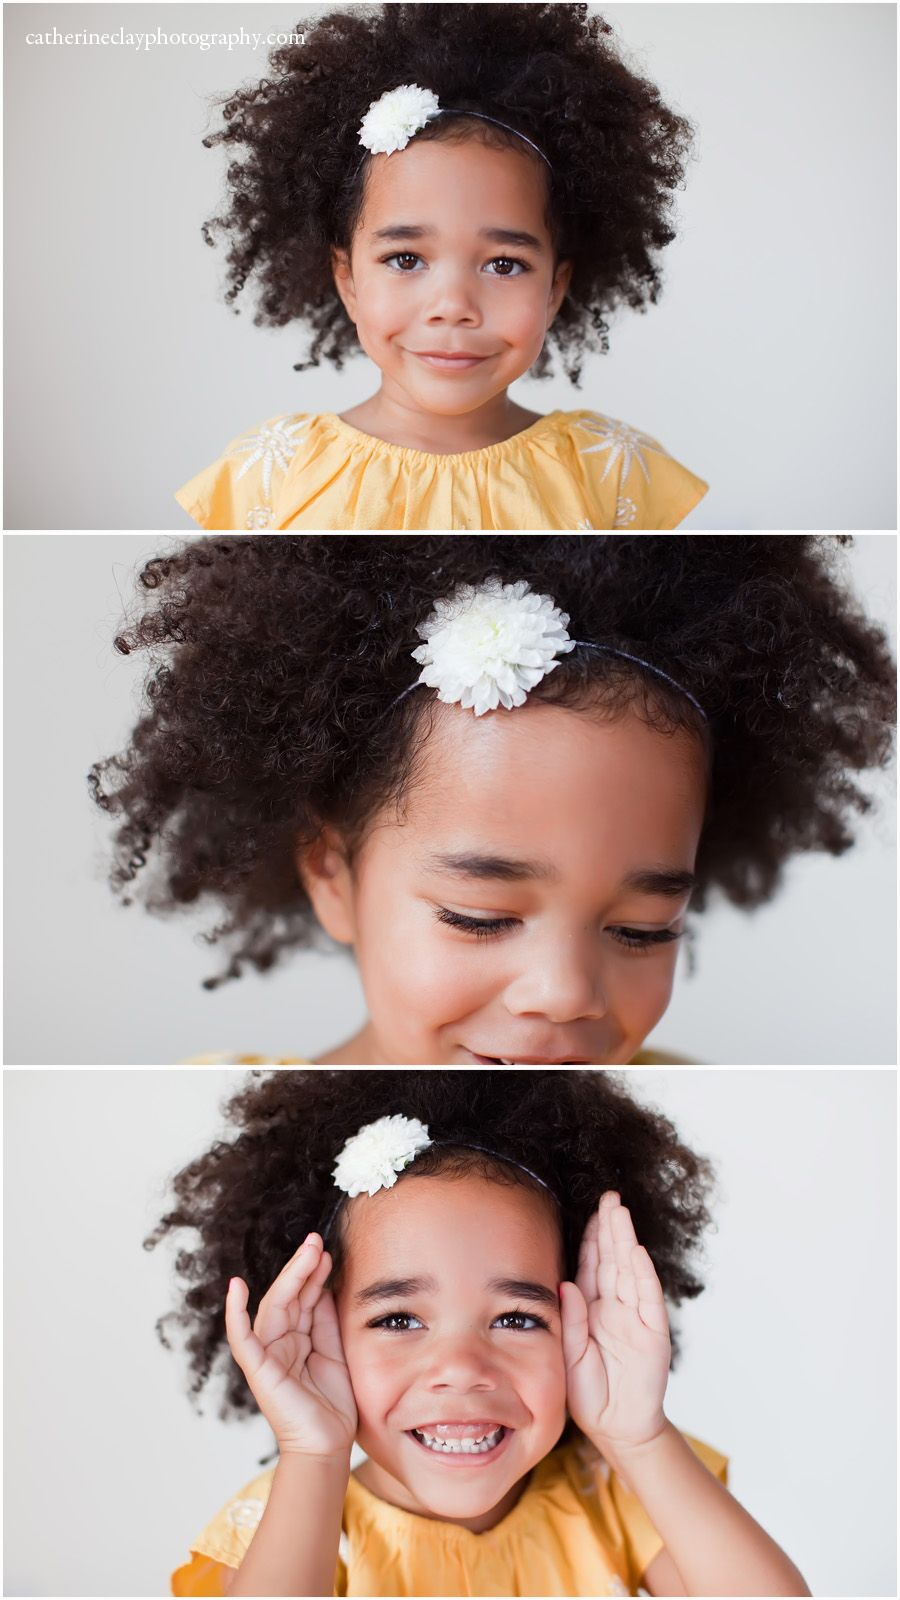 children photography, studio pictures, studio what to wear ideas // Dallas photographer Catherine Clay